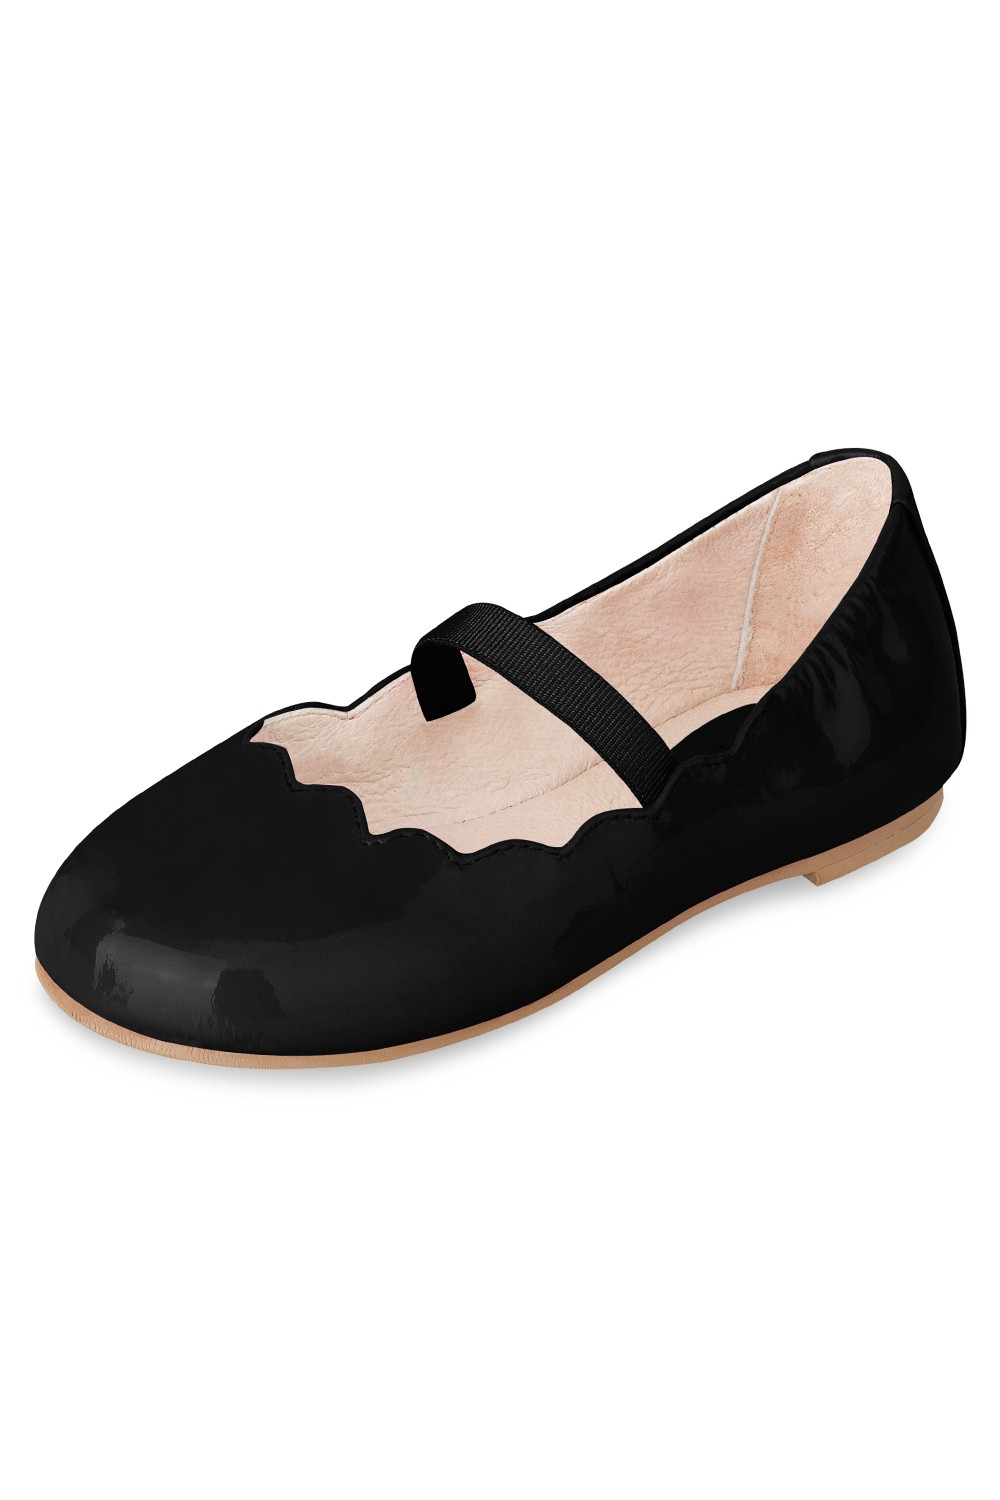 Ballerina Mit Muschelrand - Kleinkind Toddlers Fashion Shoes